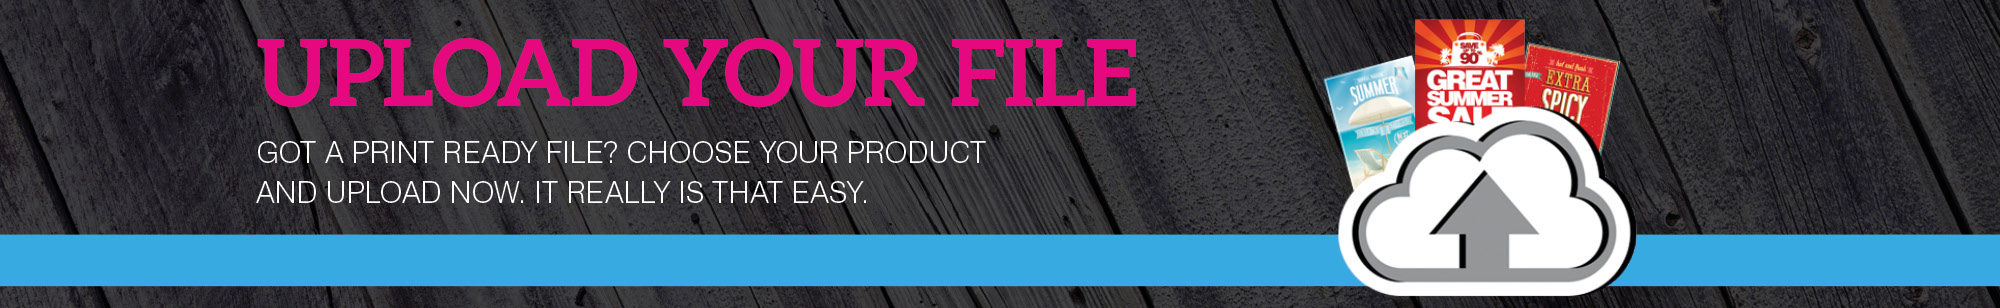 Upload Your File